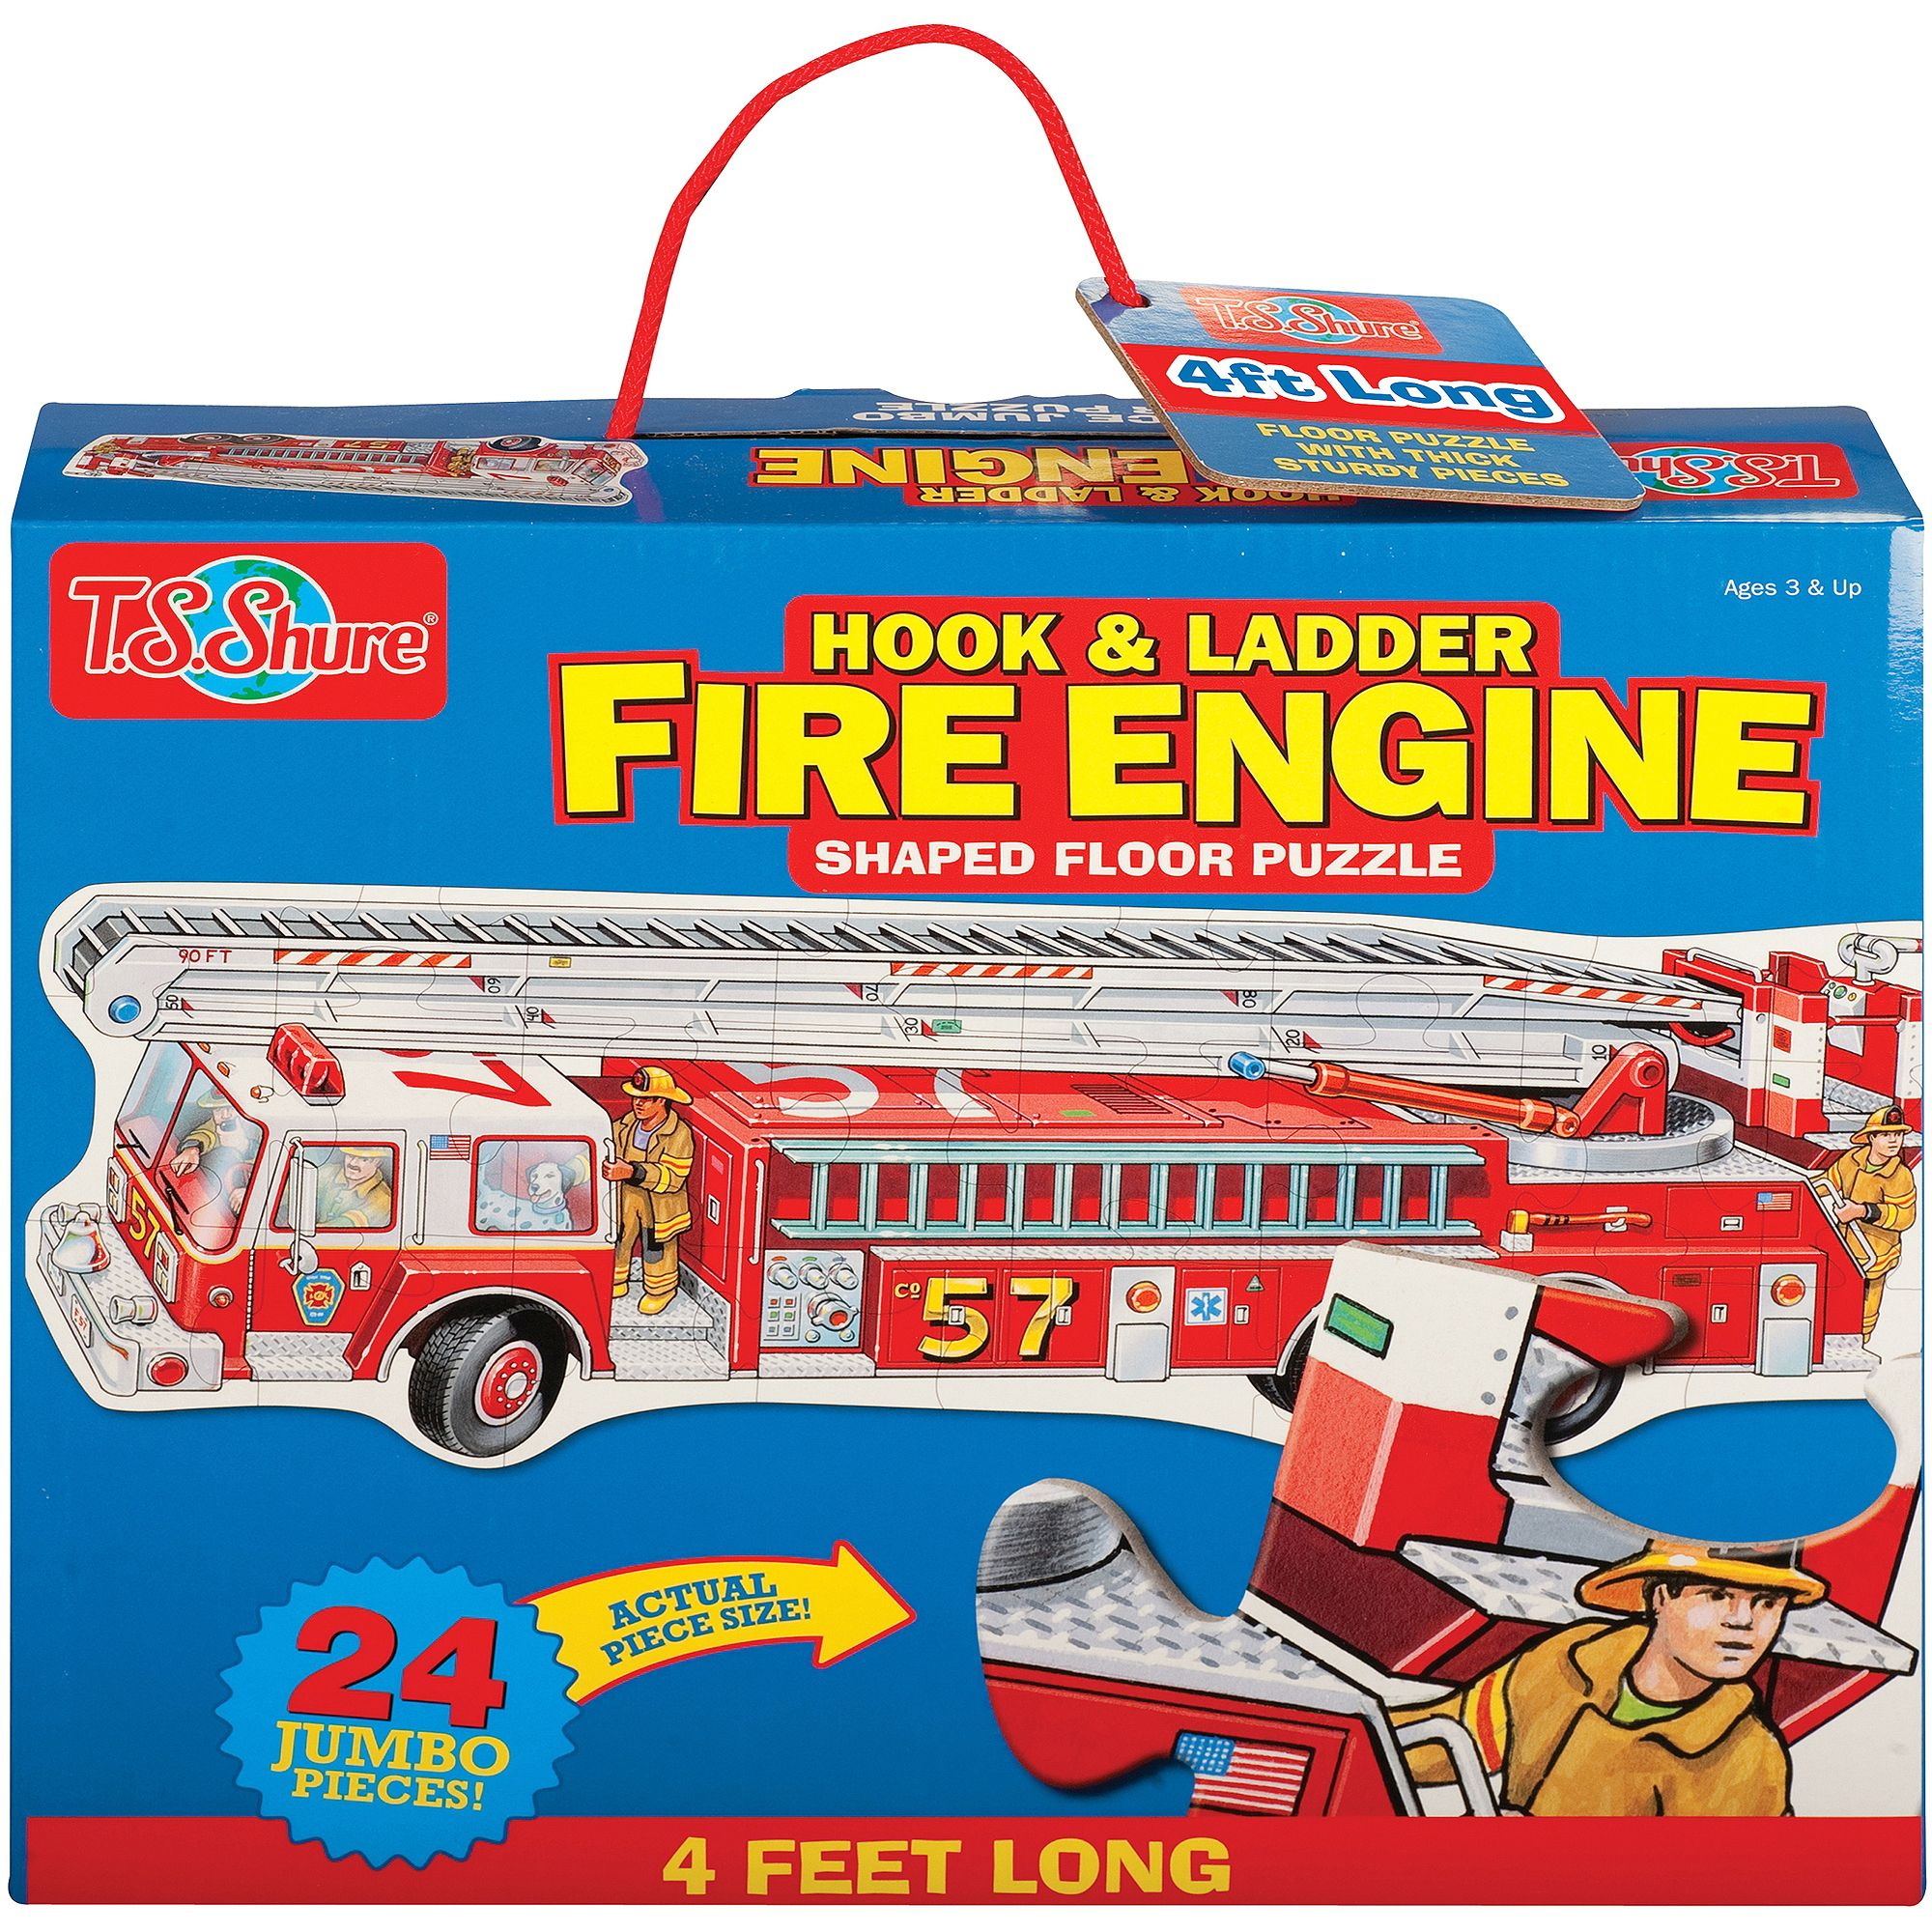 T.S. Shure Fire Engine Shaped Jumbo Floor Puzzle by TS Shure